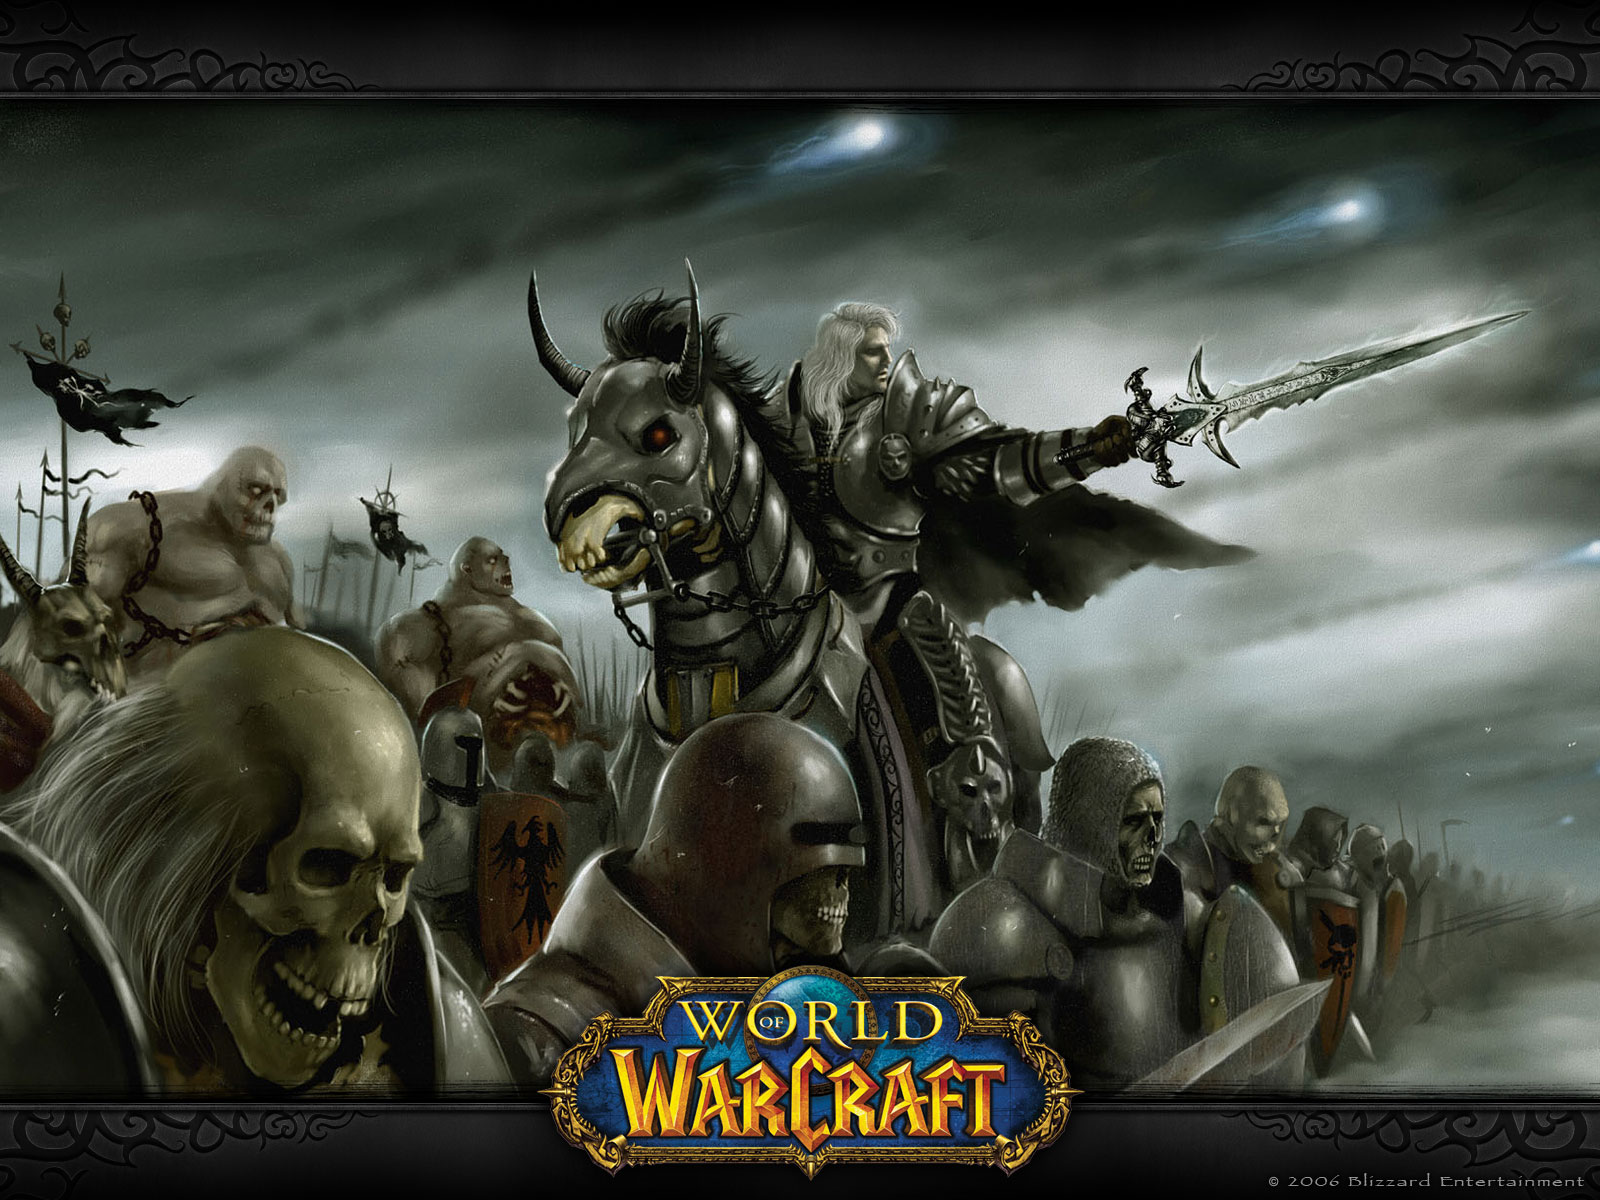 World of Warcraft wallpapers and screenshots 1600x1200